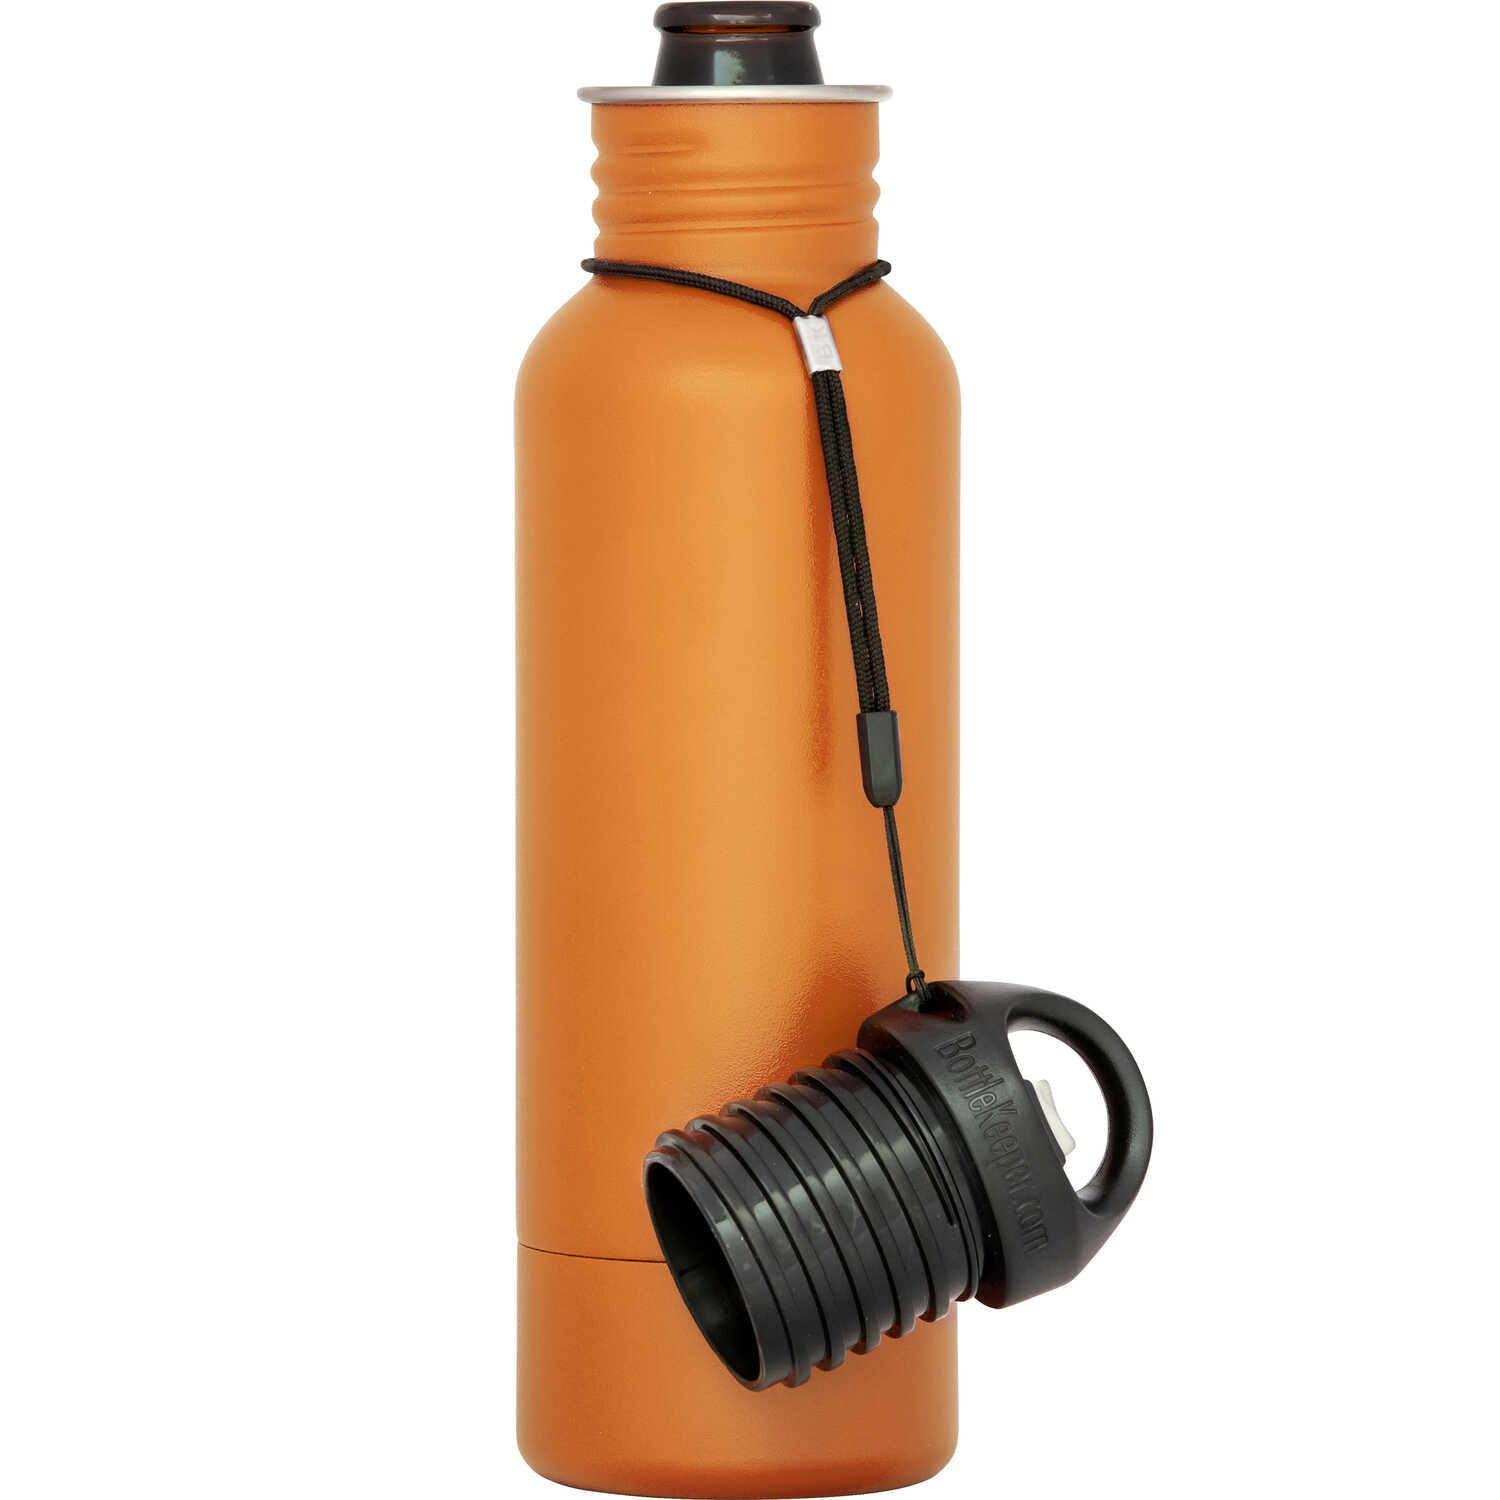 BottleKeeper  The Standard 2.0  Insulated Bottle Koozie  12 oz. Orange  1 pk